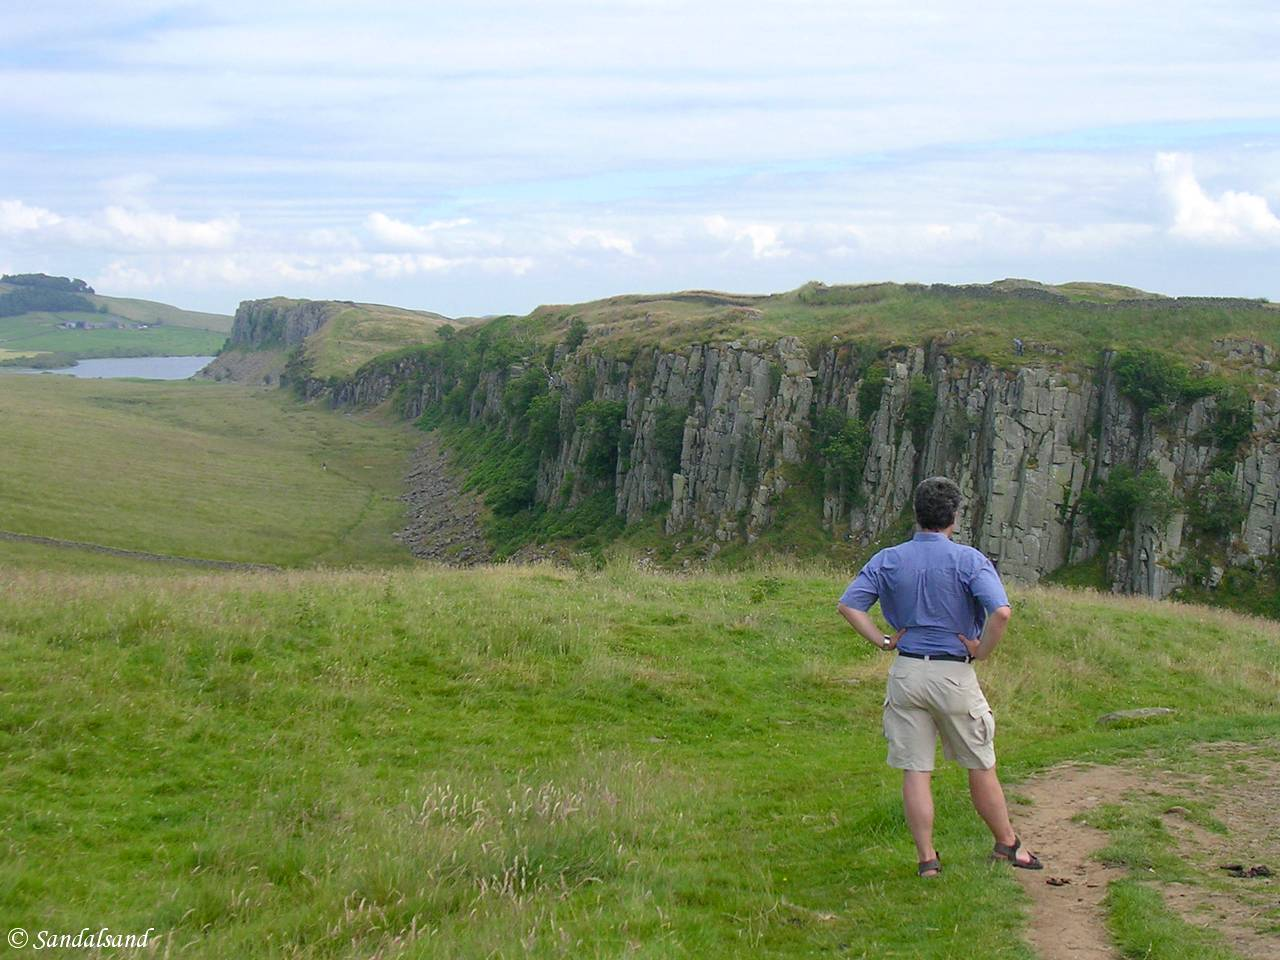 England - Hadrian's Wall - Steel Rigg - 2005 - Bård Humberset, the author of Sandalsand